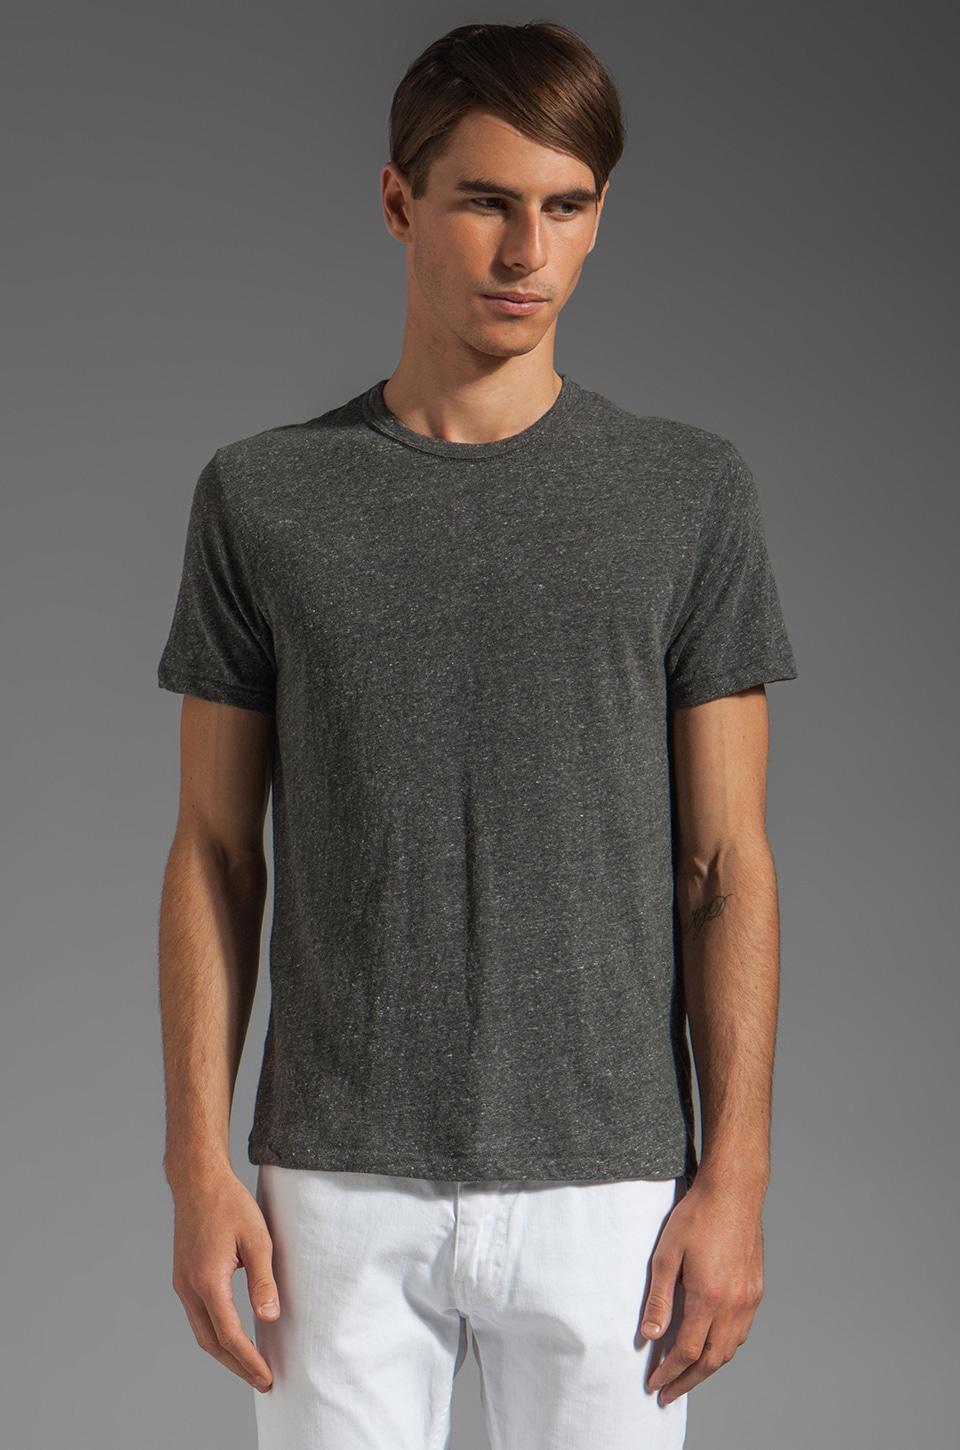 TODD SNYDER Classic T in Charcoal